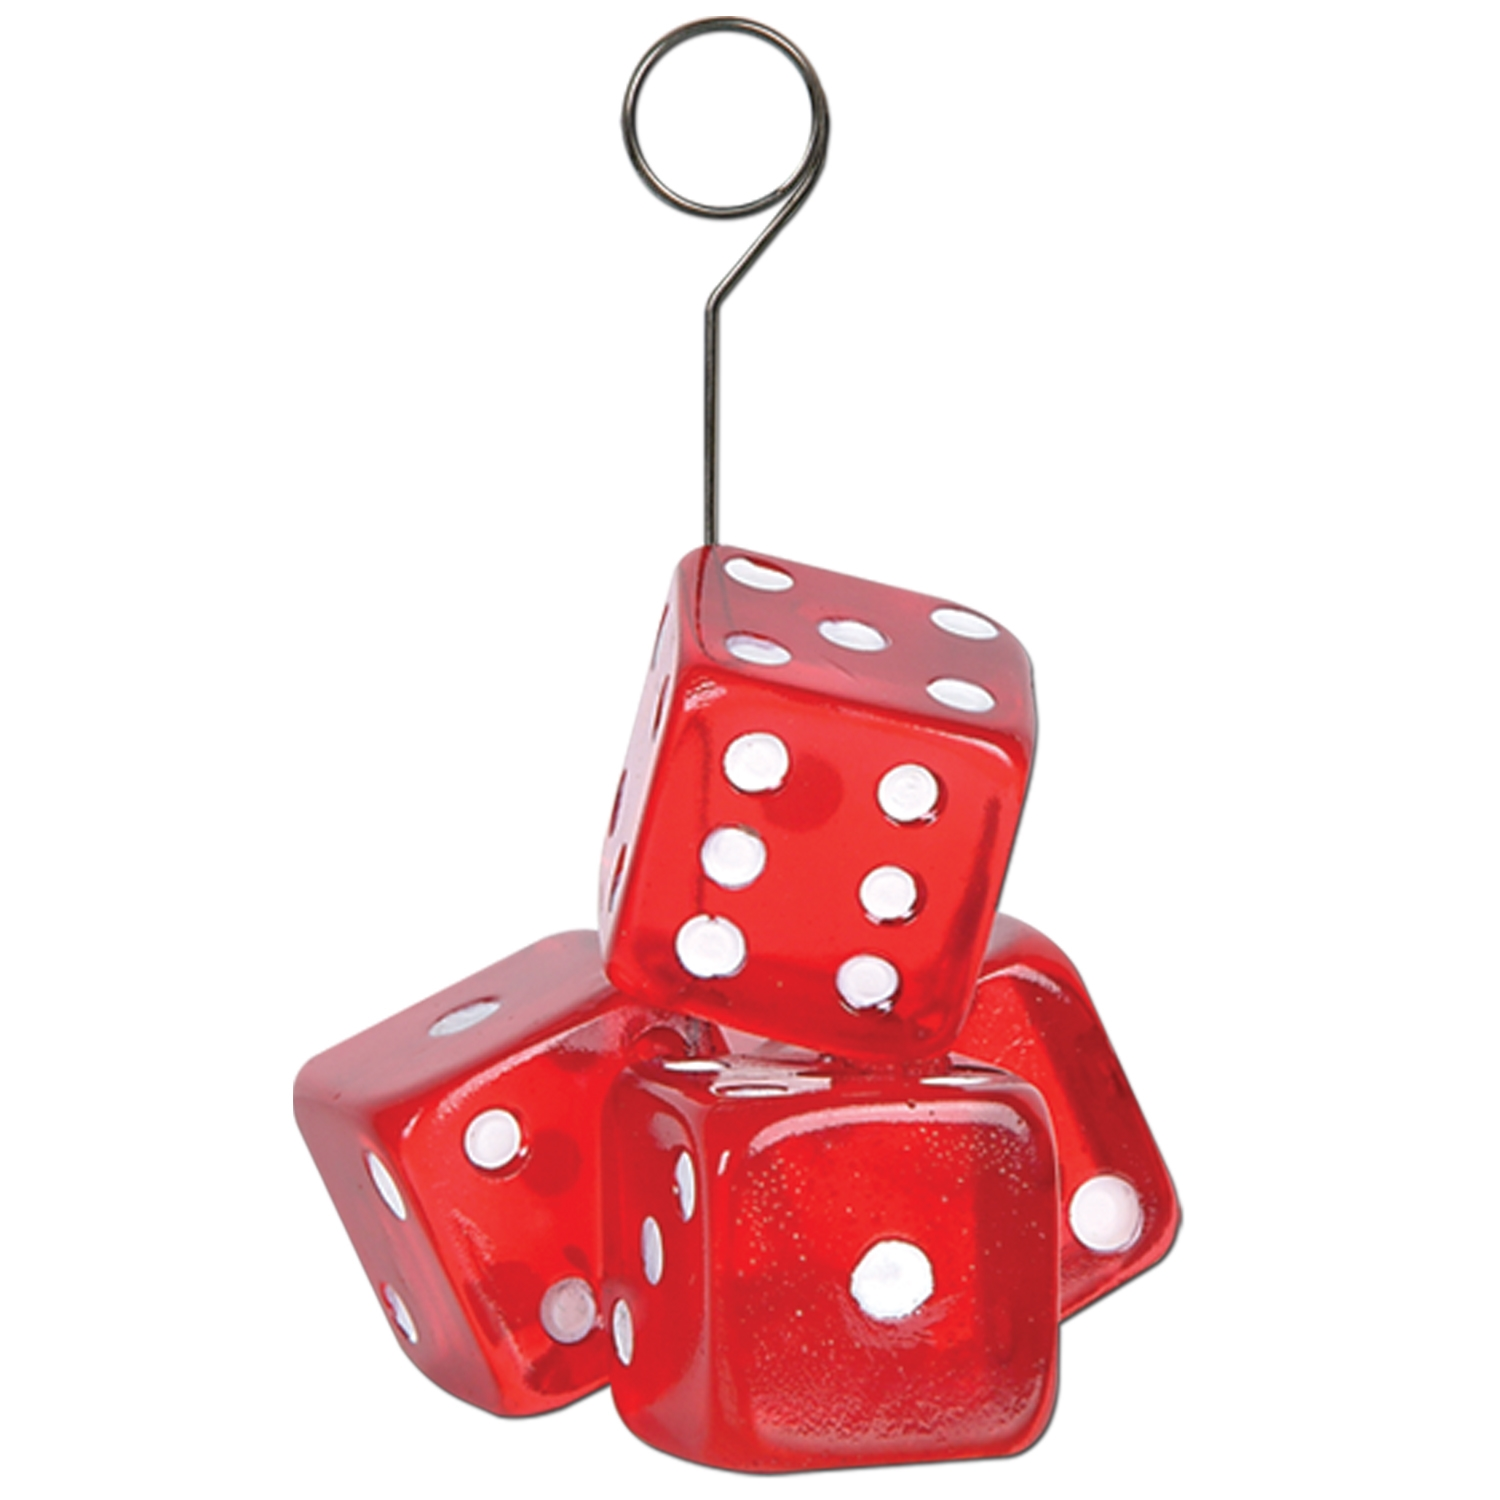 6oz Dice Photo/Balloon Holder (Pack of 6) dice, photo, balloon, holder, table, decoration, centerpiece, gambling, casino, betting, poker, night, hotel, restaurant, bar, party, pack, event, celebration